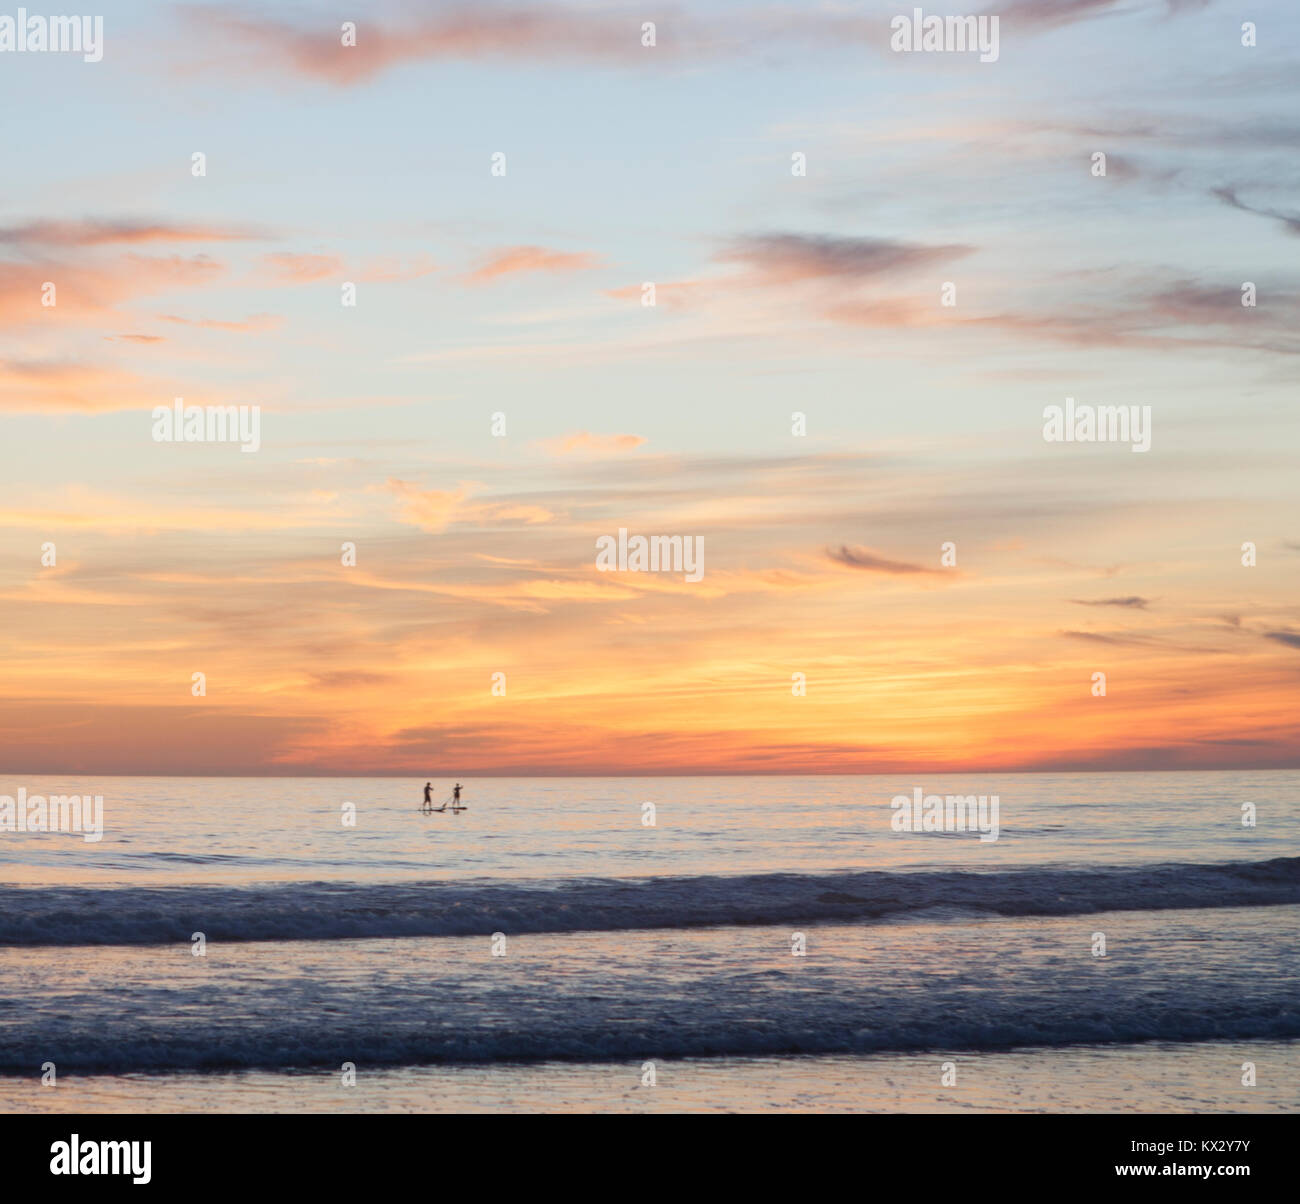 Two people on stand up paddle boards in middle of ocean at sunset. - Stock Image